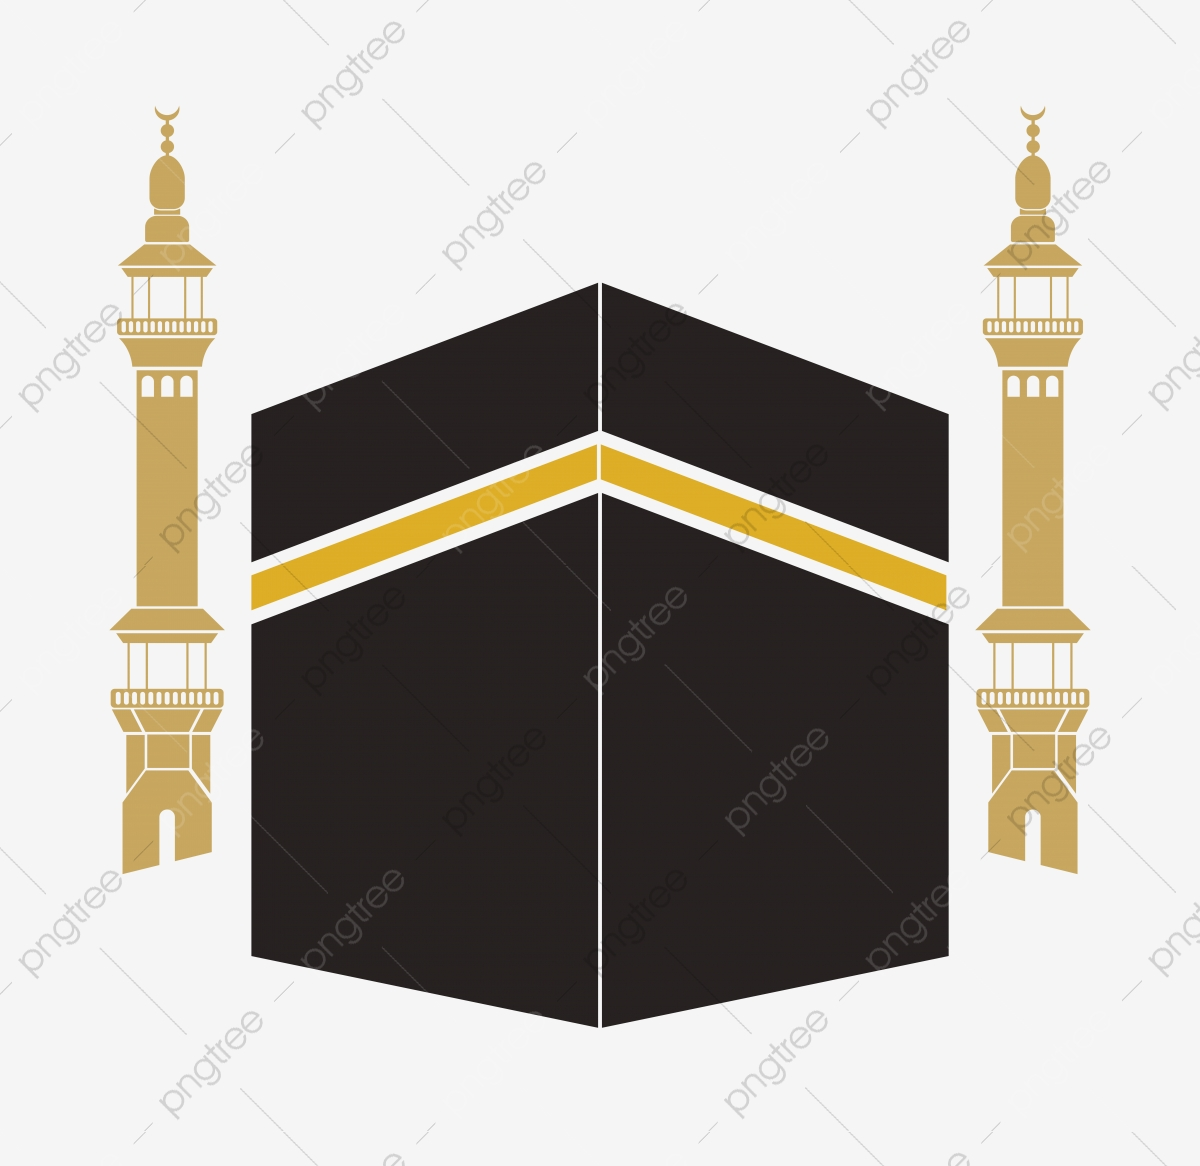 Download The Mosque Vector Images, Muslim, Ramadan, Islamic PNG ...